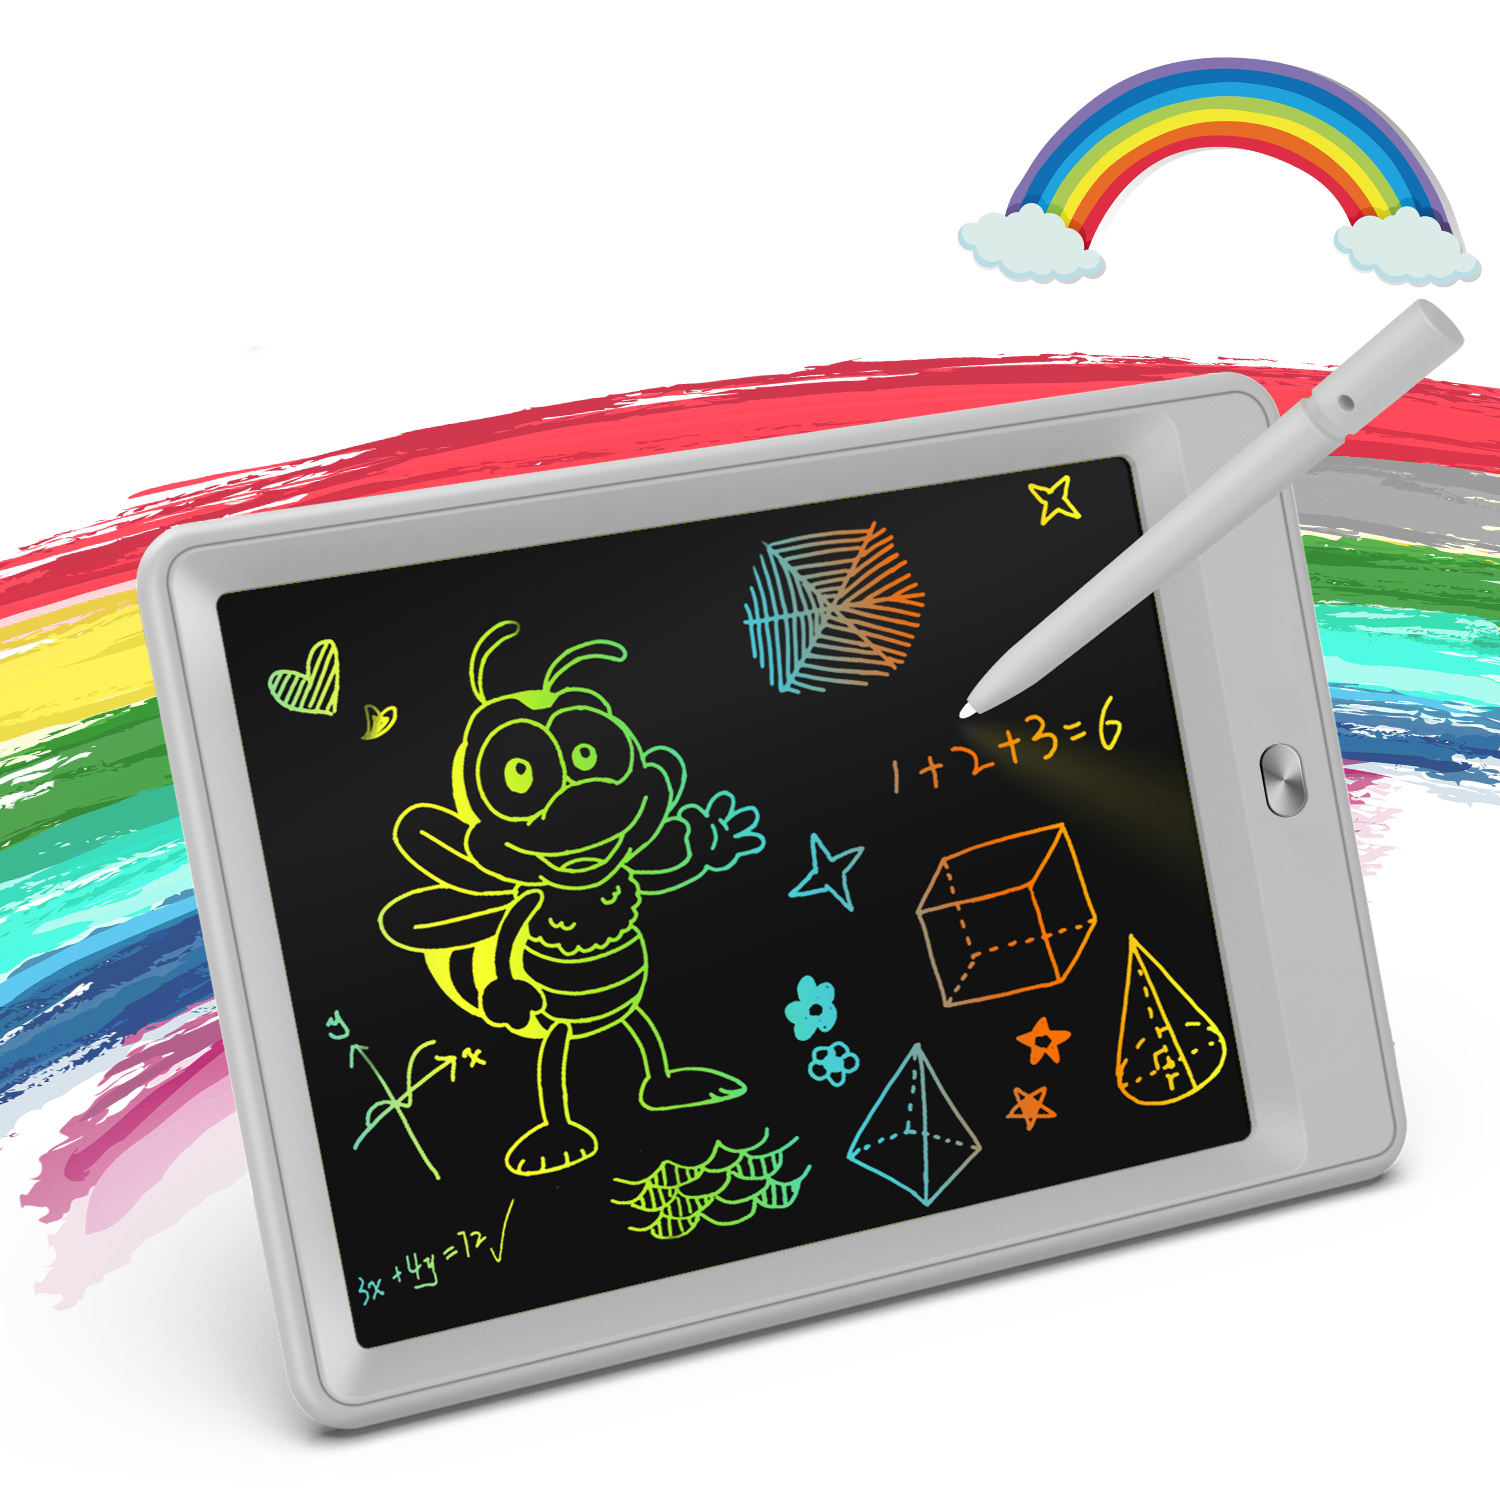 Tekfun professional digital handwriting note board erasable drawing pad doodle tablero de escritura LCD writing tablet